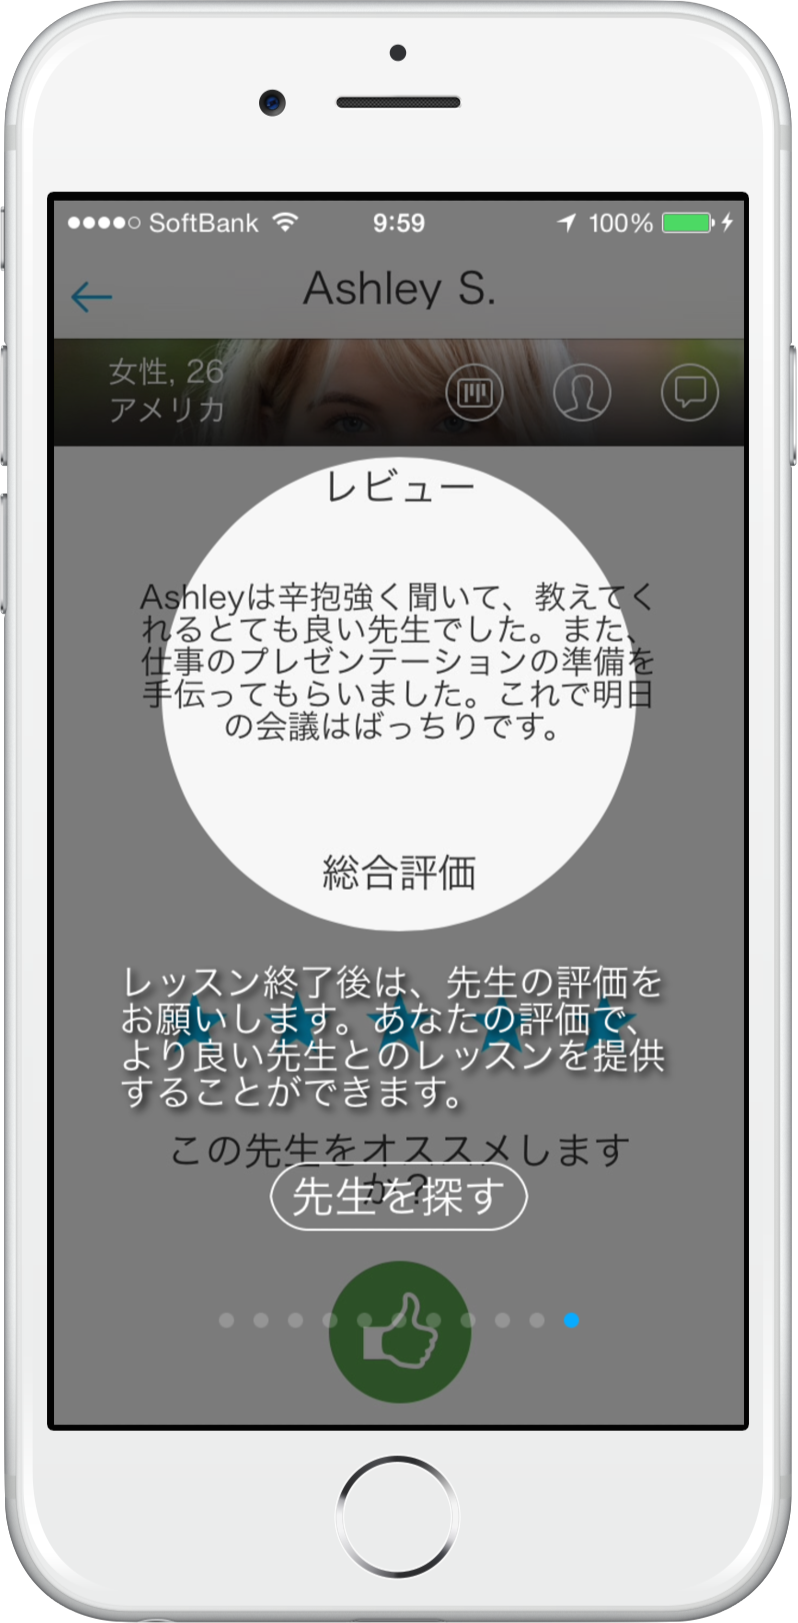 eikaiwaNOW - レッスンの流れ - JPN - 10_iphone6_silver_portrait.png